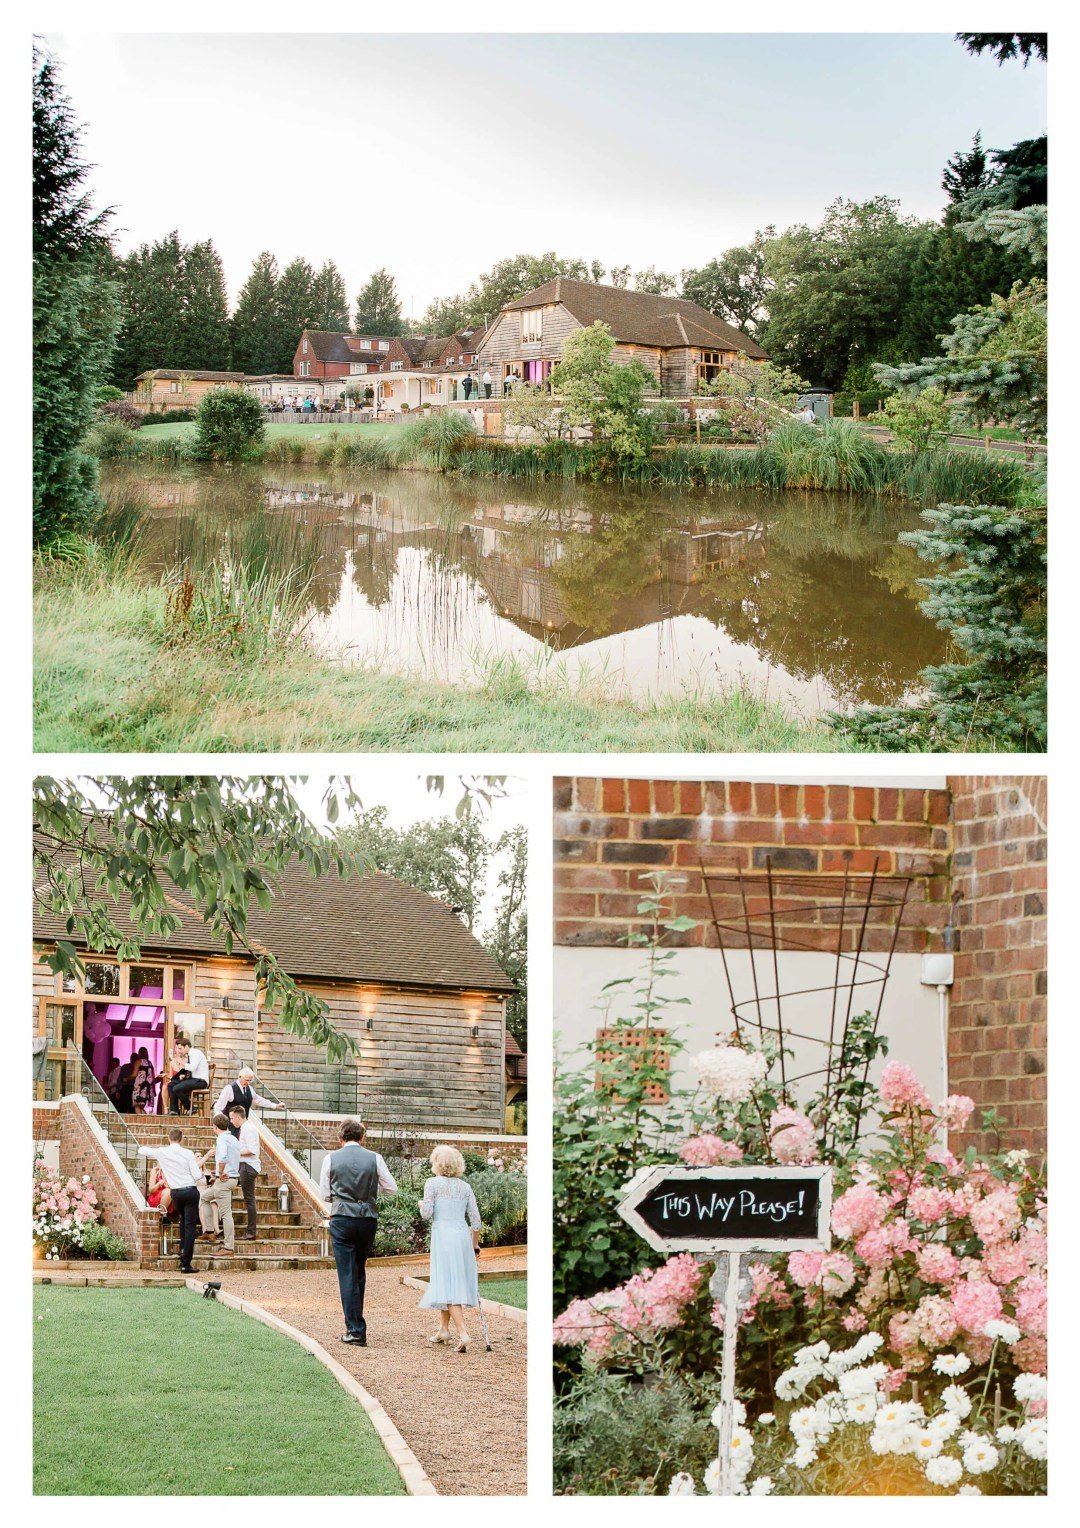 Brookfield Barn wedding venue photography in Horsham